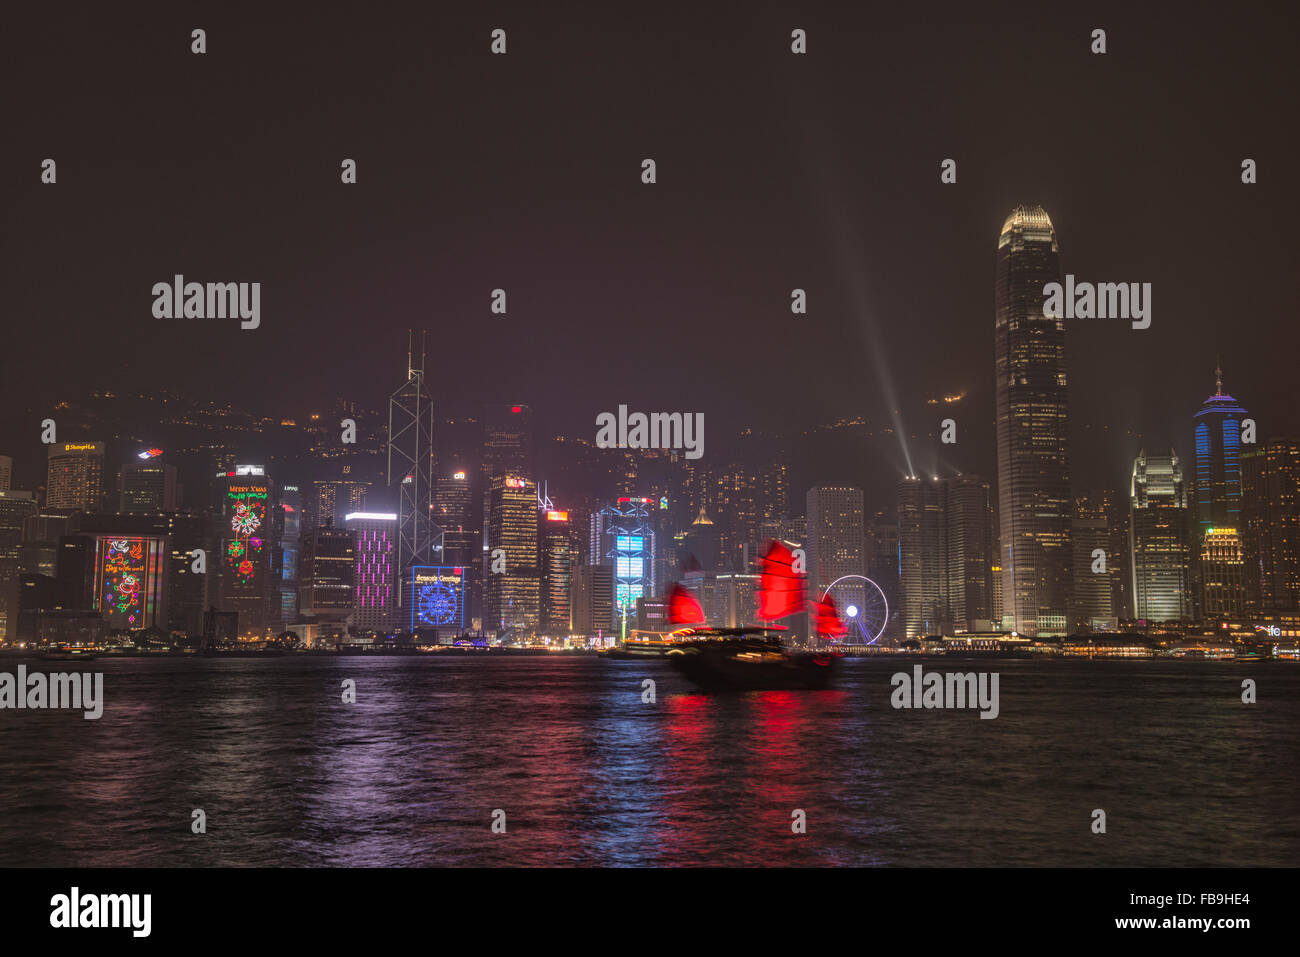 A traditional junk sails through the harbour during A Symphony of Lights in Hong Kong - Stock Image